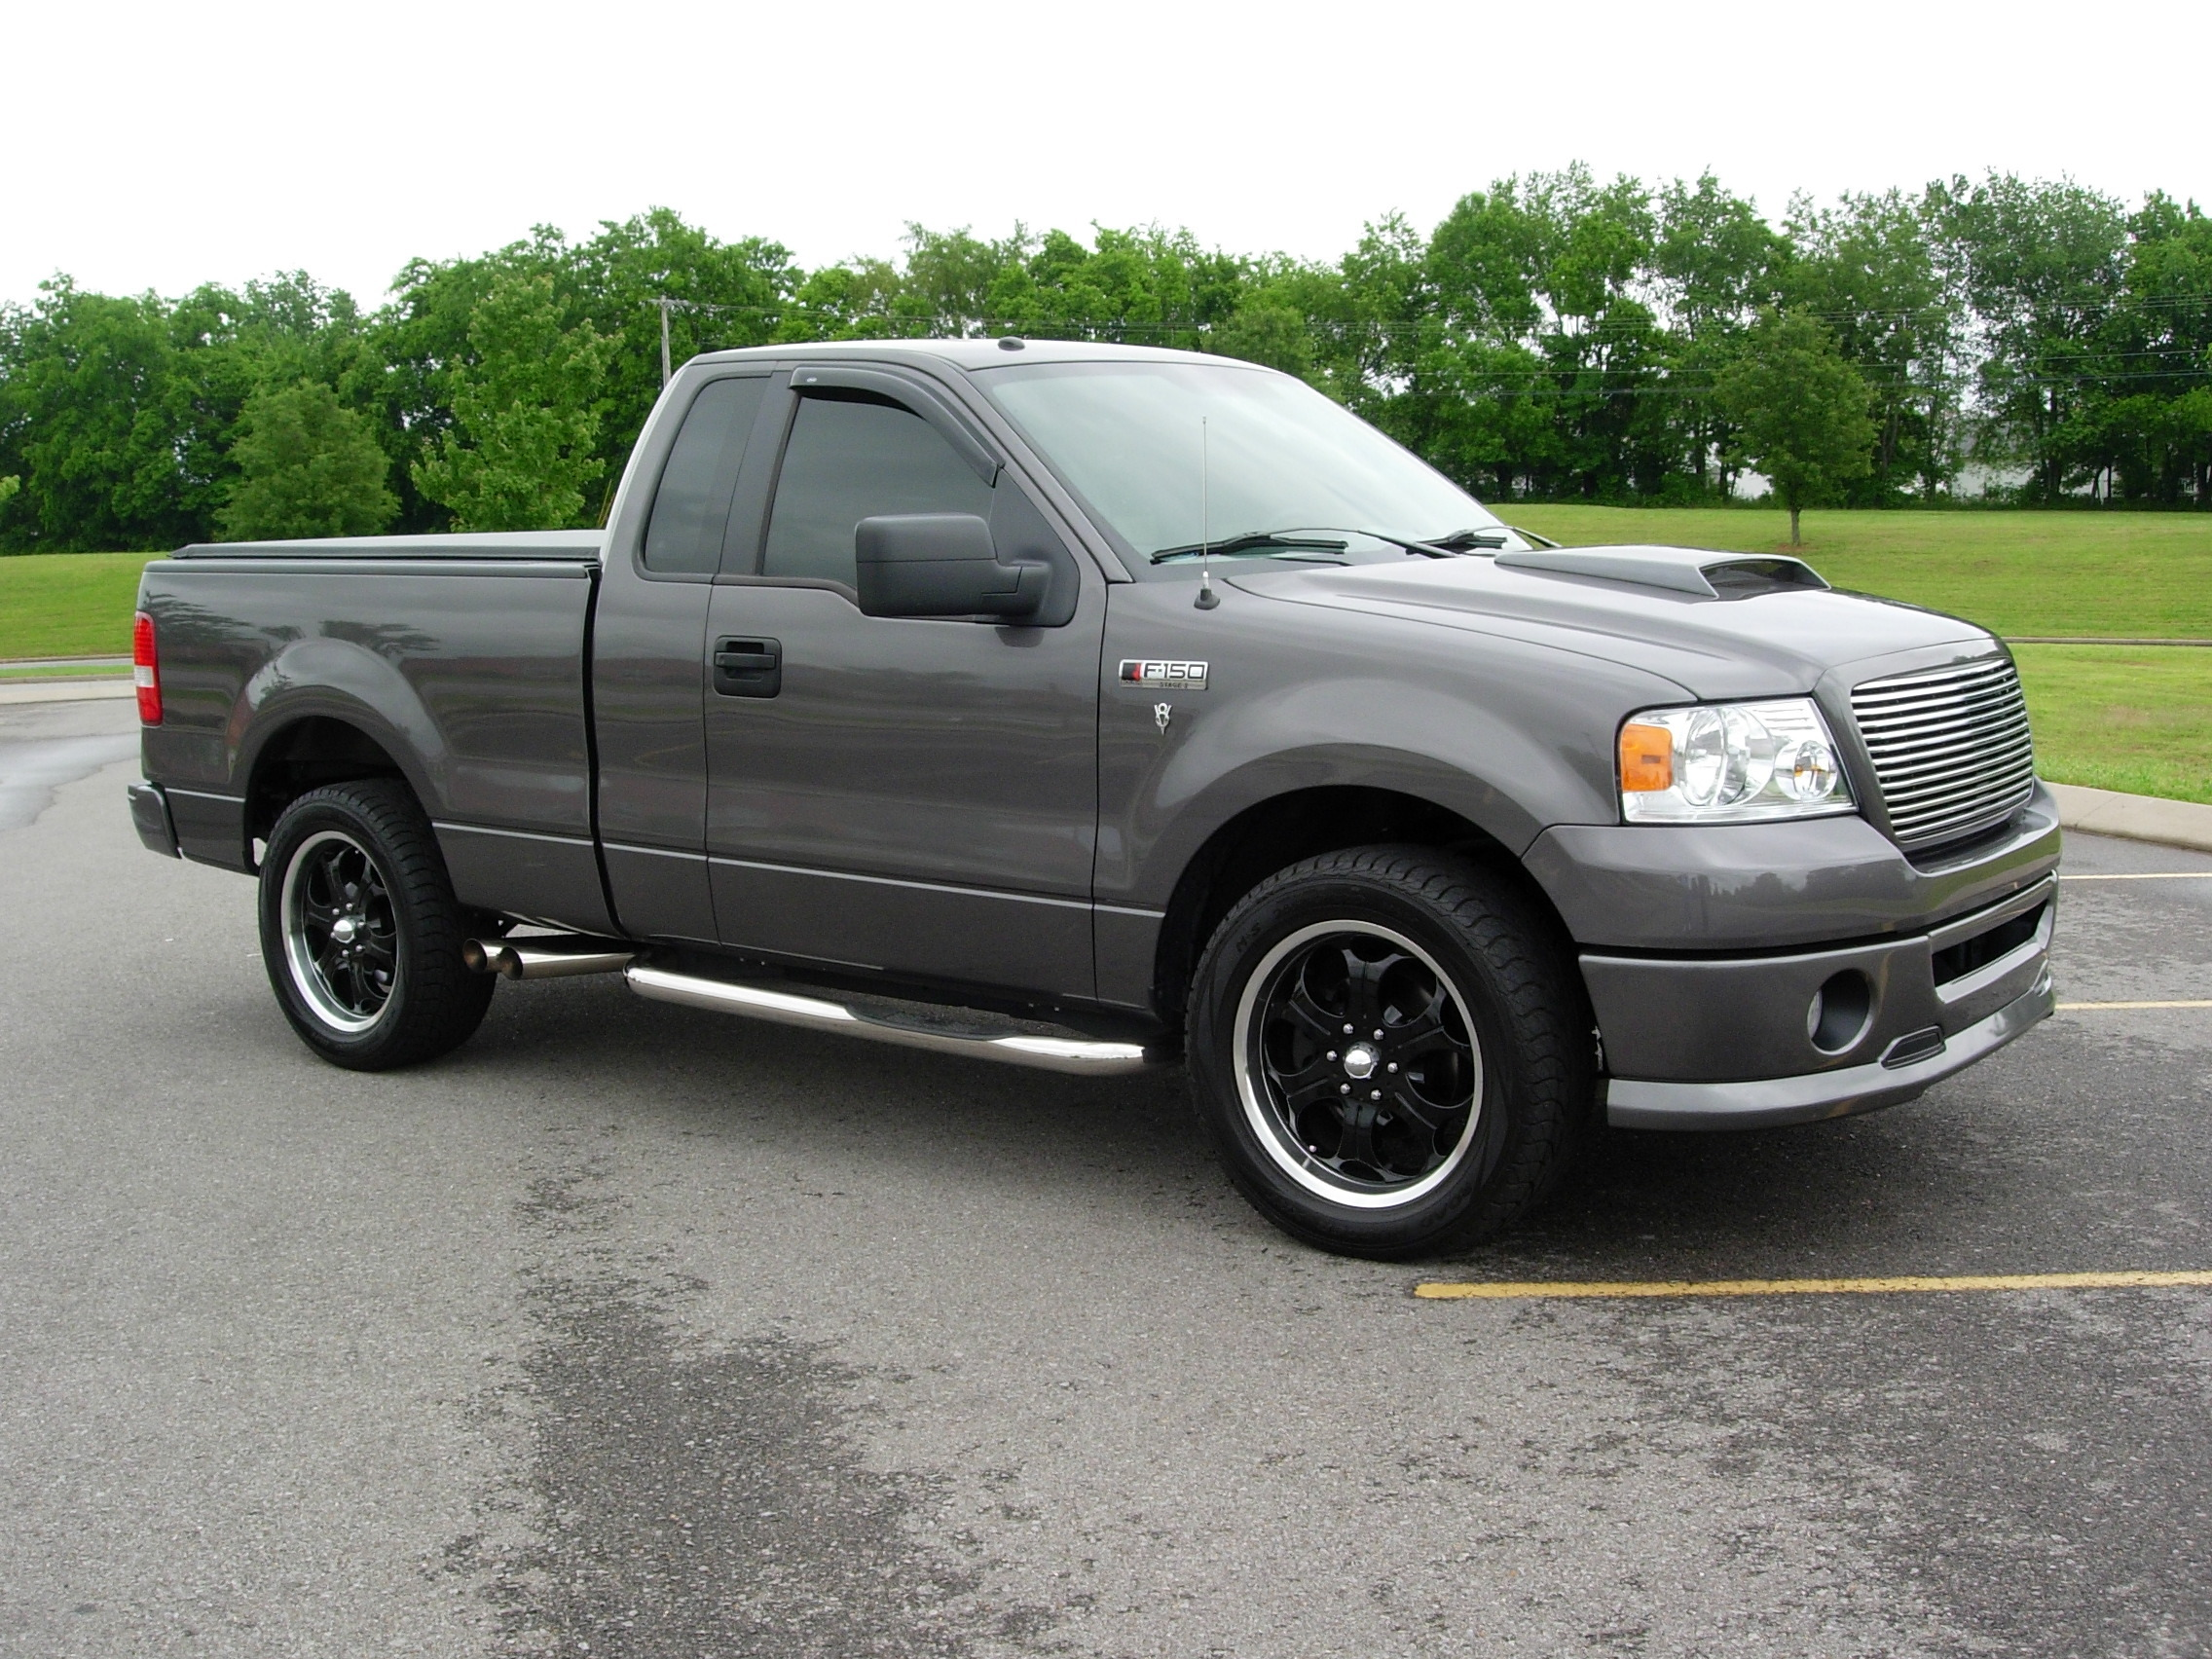 customonly 2008 ford f150 regular cab specs photos modification info at cardomain. Black Bedroom Furniture Sets. Home Design Ideas